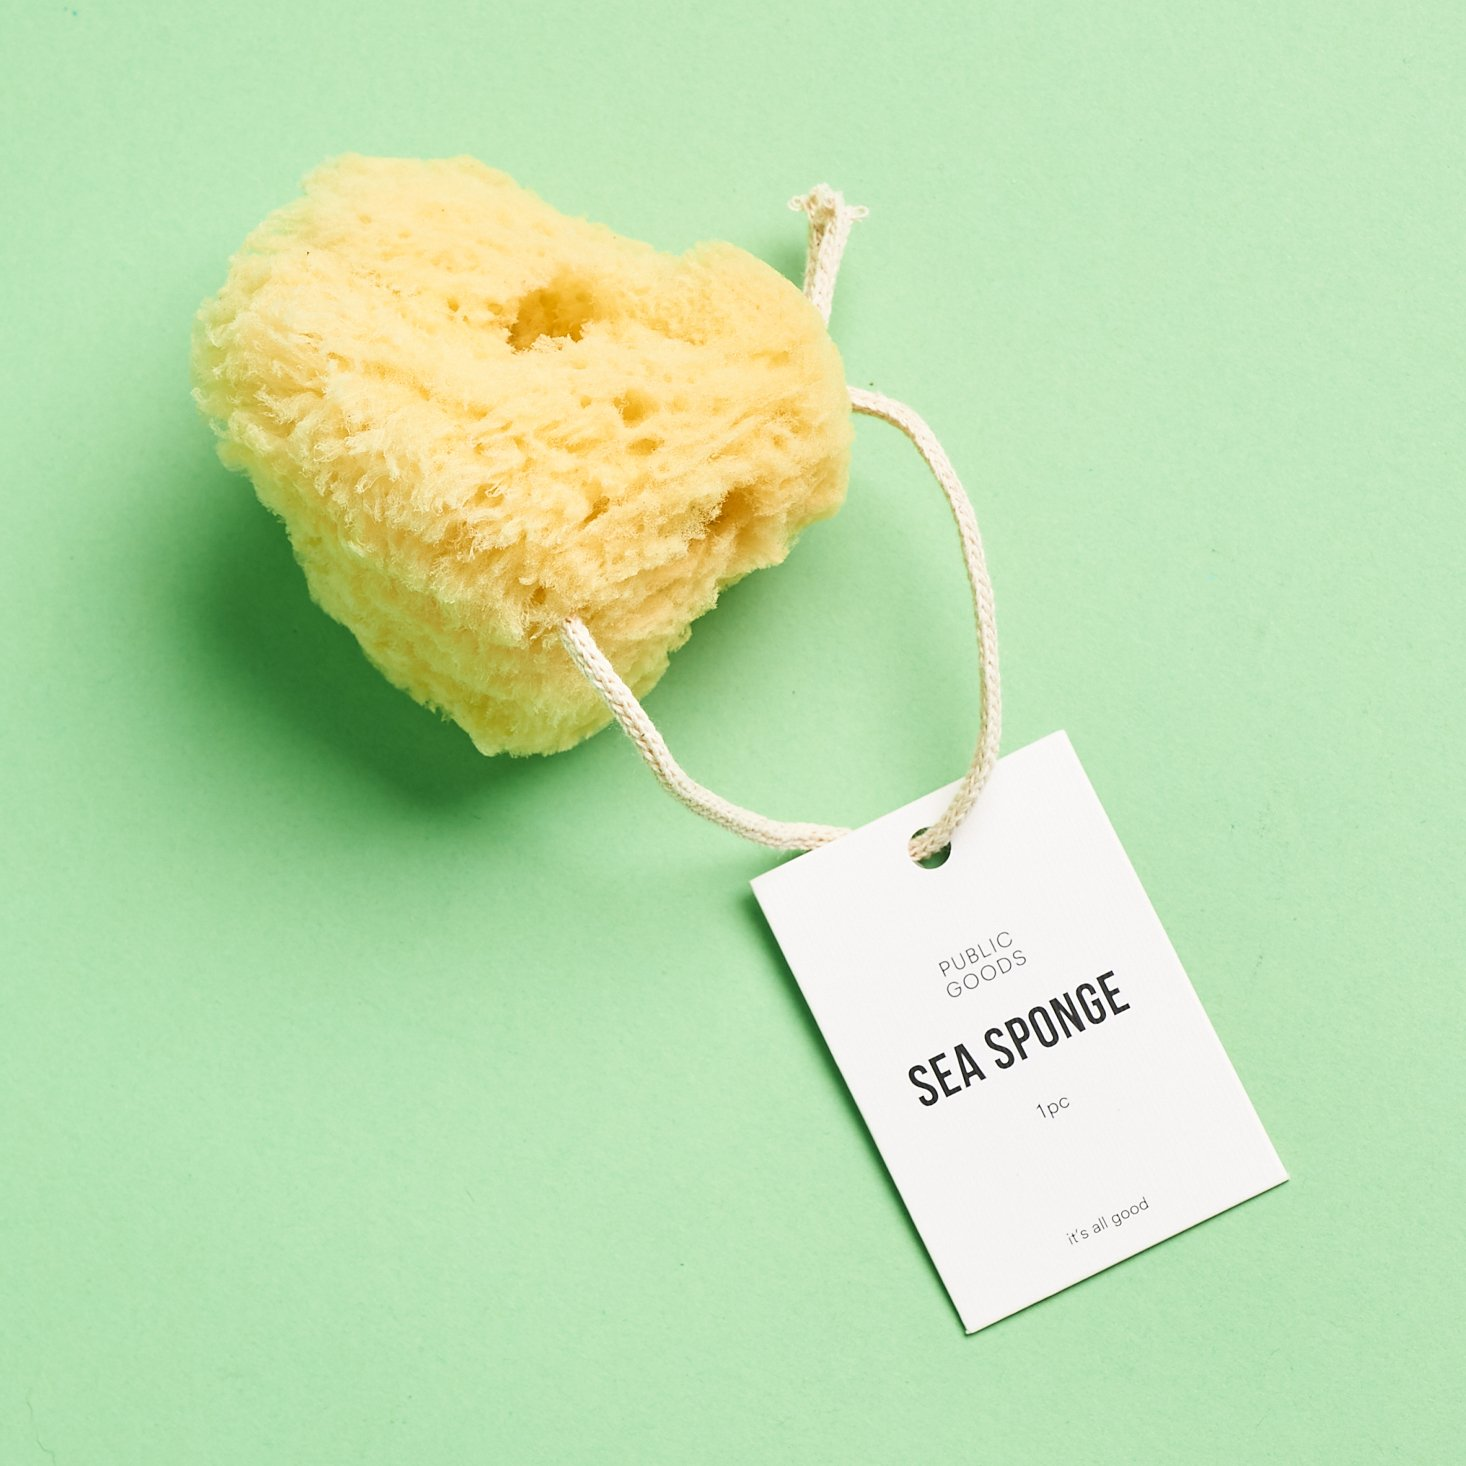 Public Goods Sea Sponge with tag attached